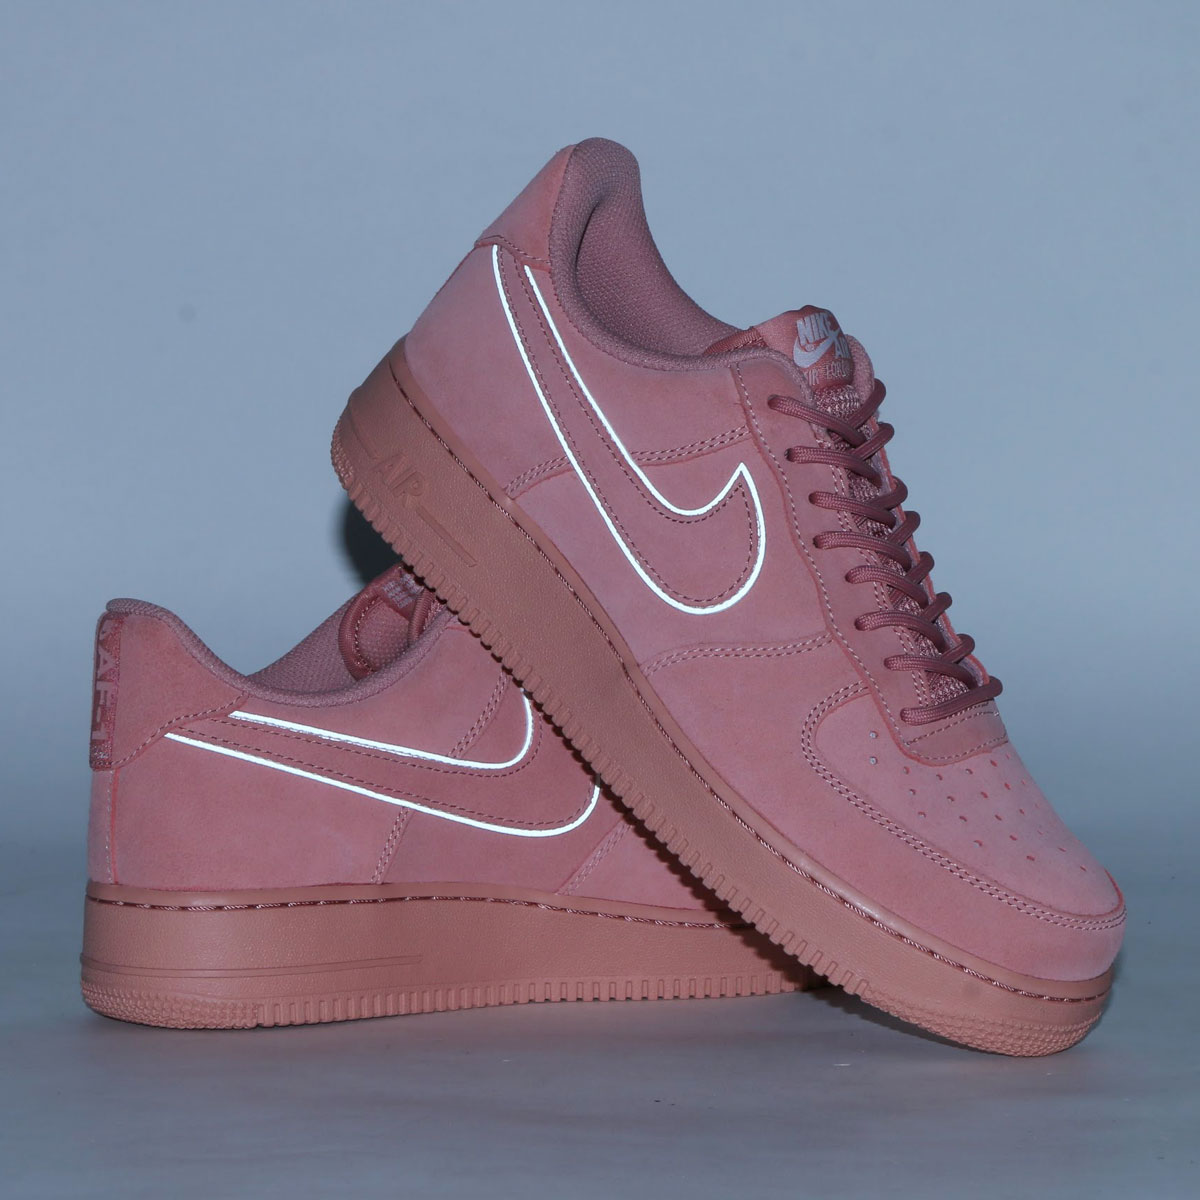 614b6831e nike wmns air force 1 upstep red stardust 4; nike air force 1 07 lv8 suede nike  air force 1 07 lv8 suede red stardust